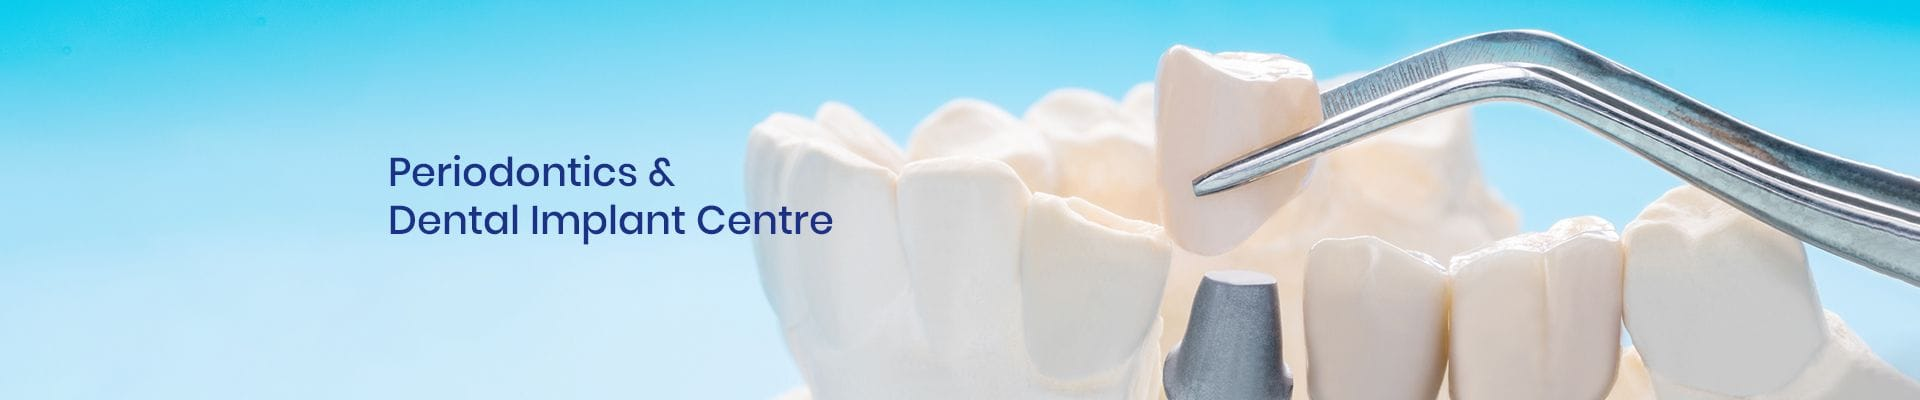 Work For Us | Periodontics & Dental Implant Centre QLD